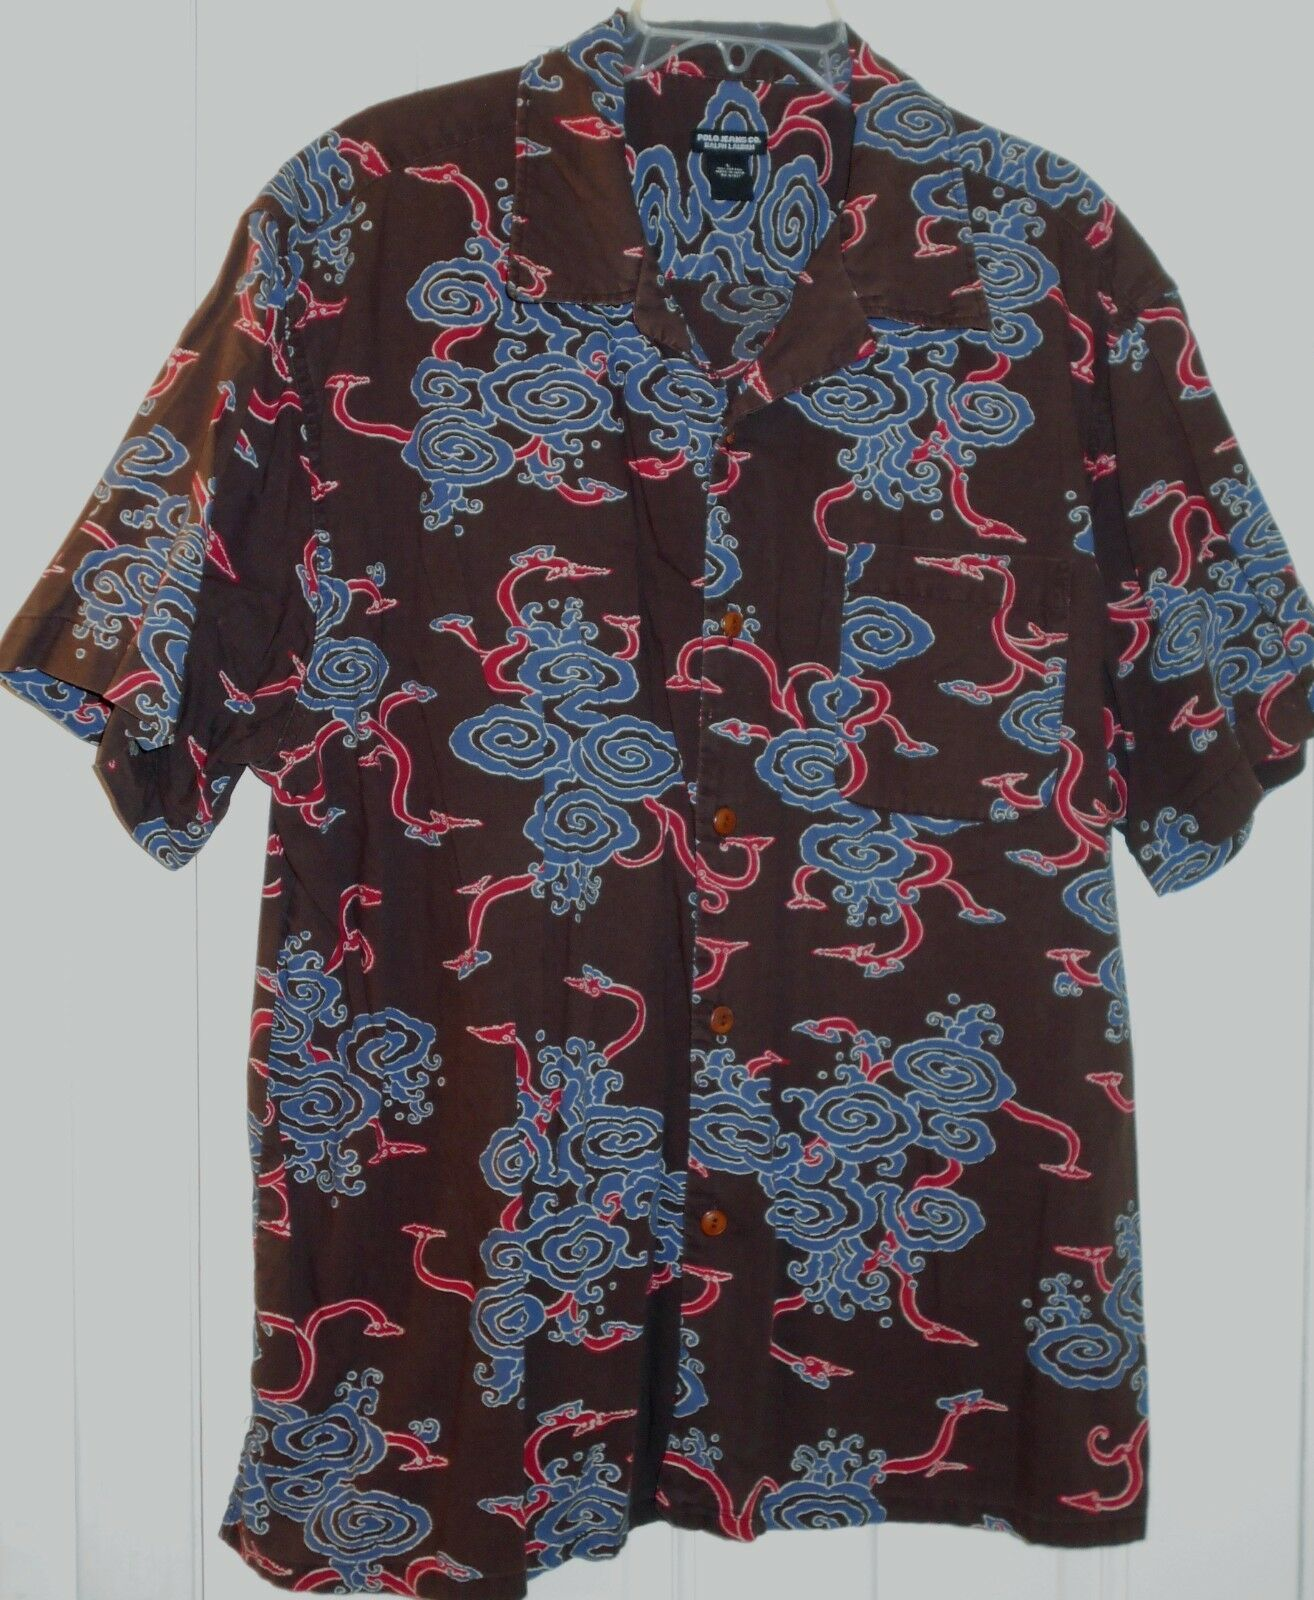 Vtg Mens RALPH LAUREN POLO Asian Hydra Dragon Space Worms Brown bluee Red SHIRTL